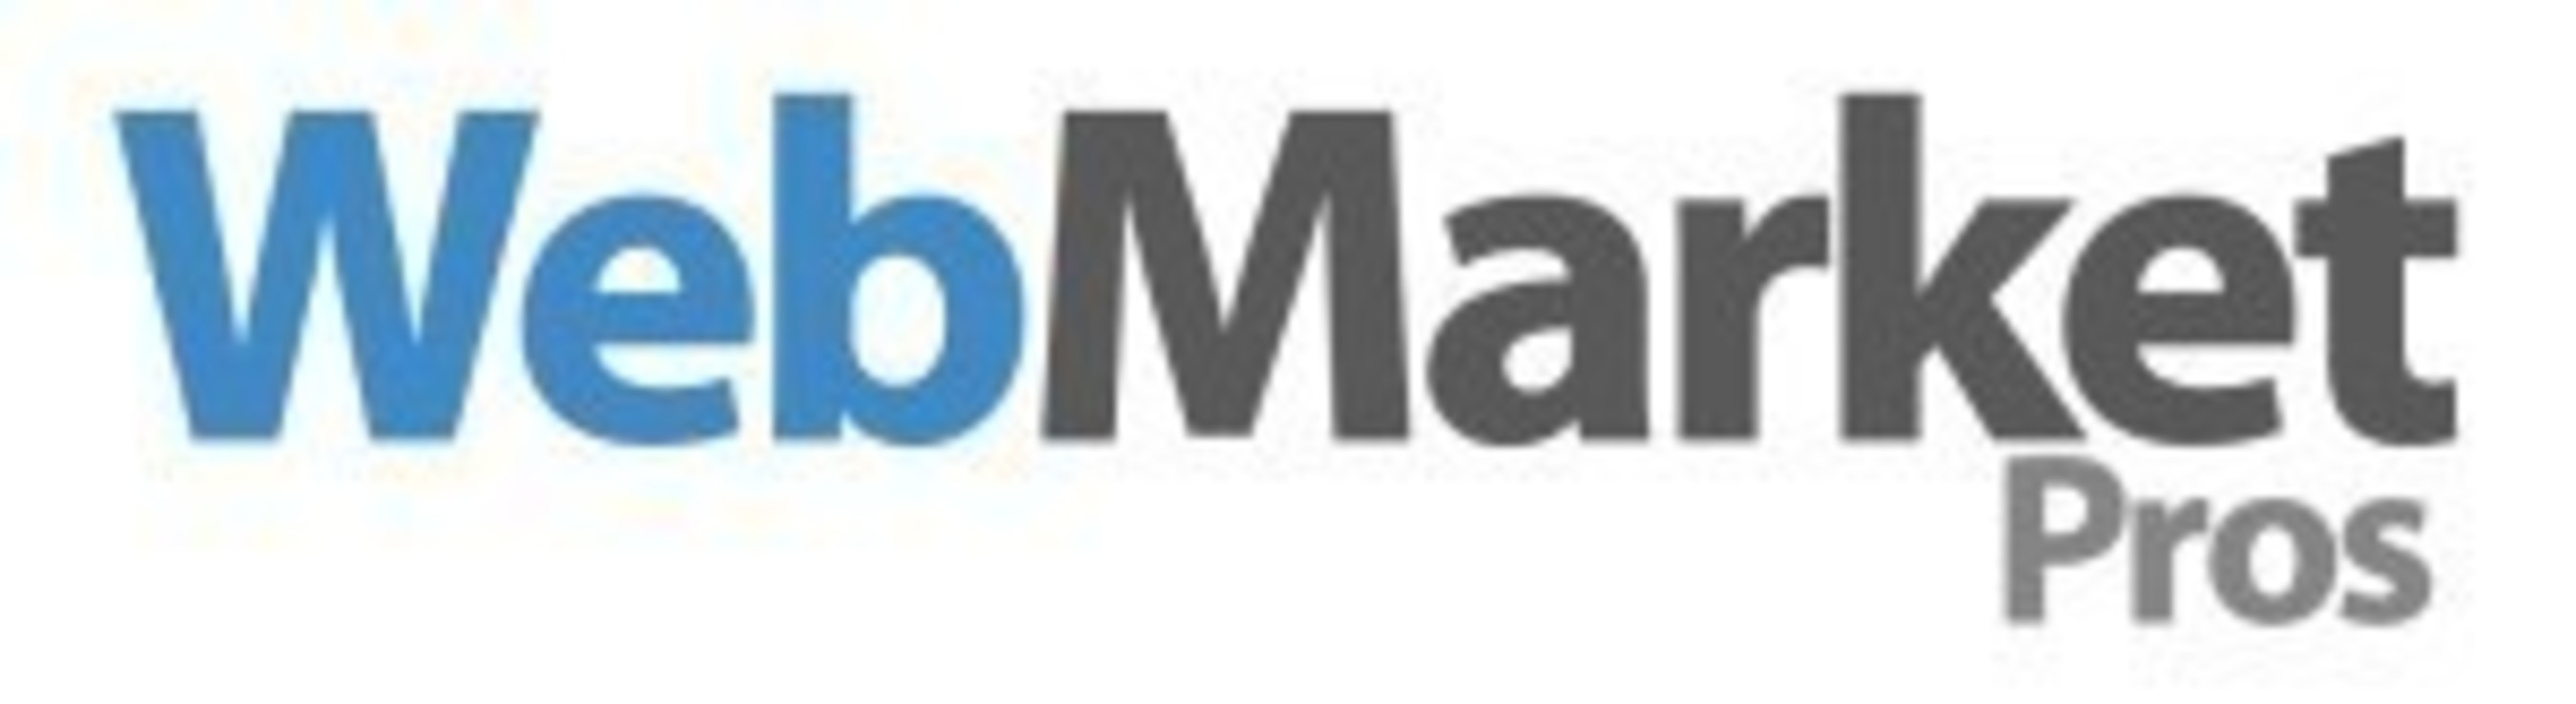 Web Market Pros Helps Businesses Grow Their Internet Marketing Presence Increasing Sales and